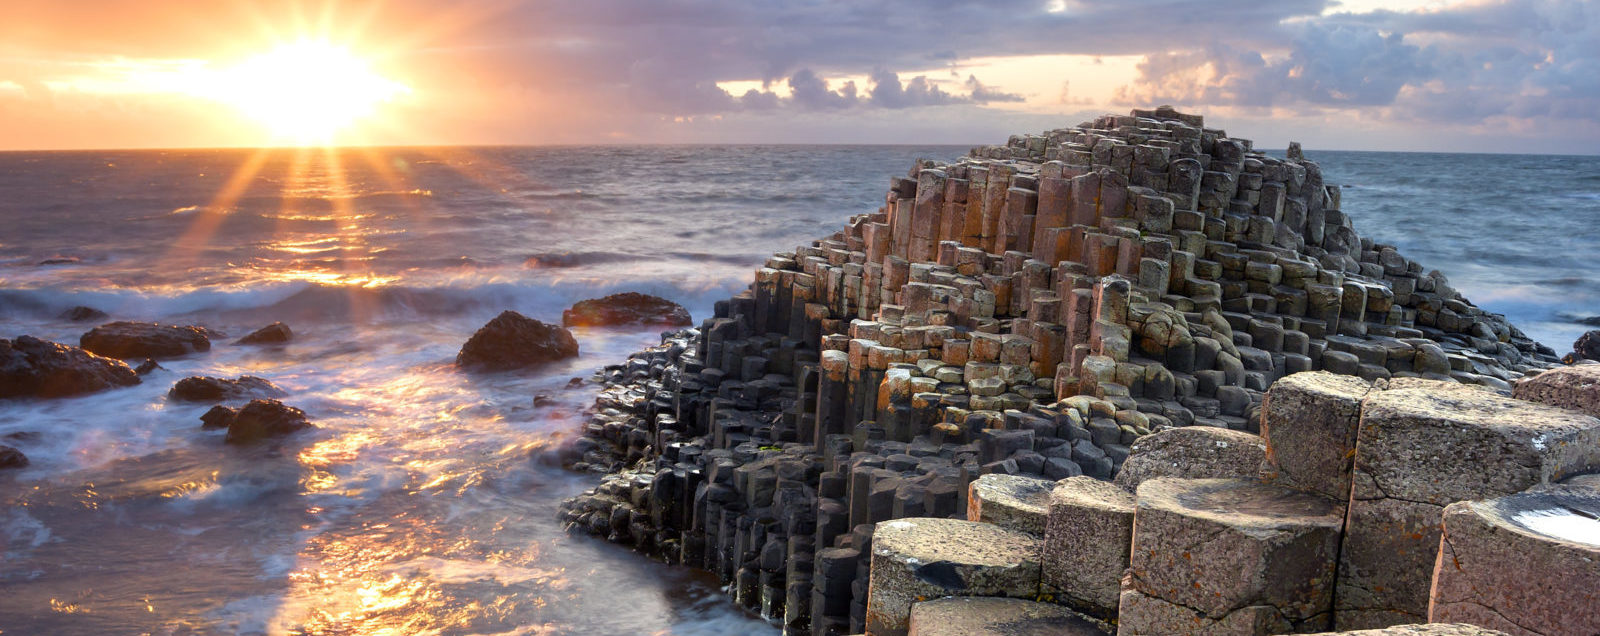 The Giant's Causeway lit by a golden sunset